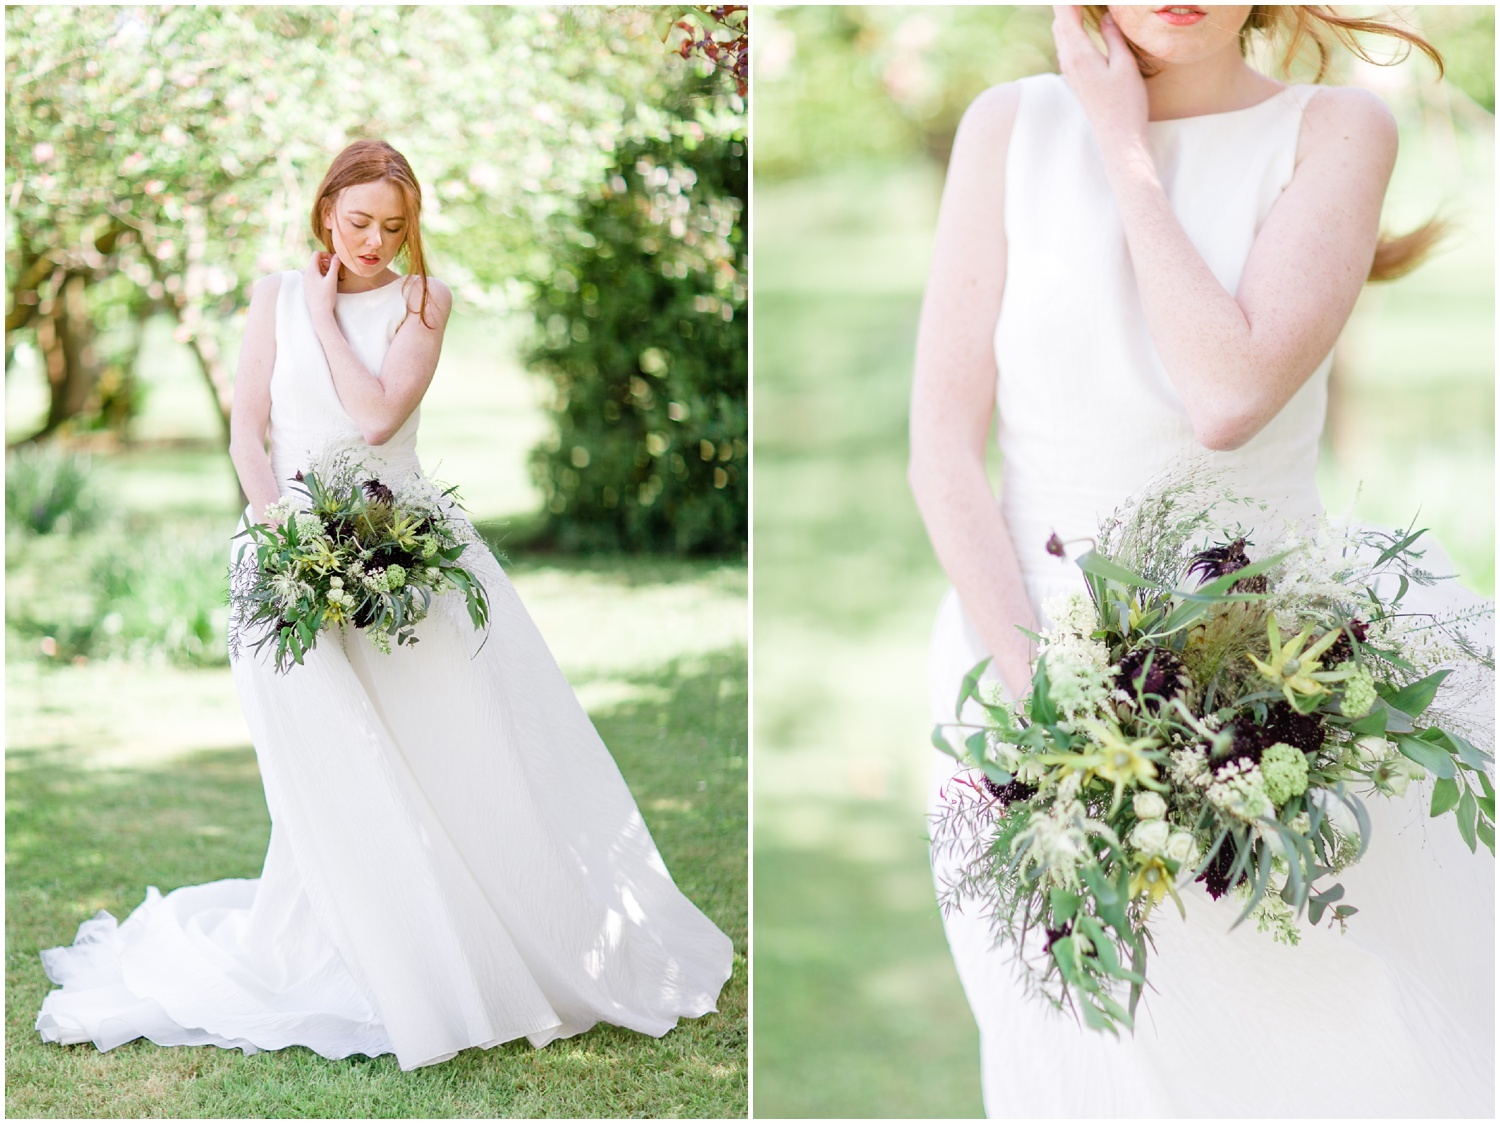 Wedding Dresses Ireland A Guide On How To Choose A Wedding